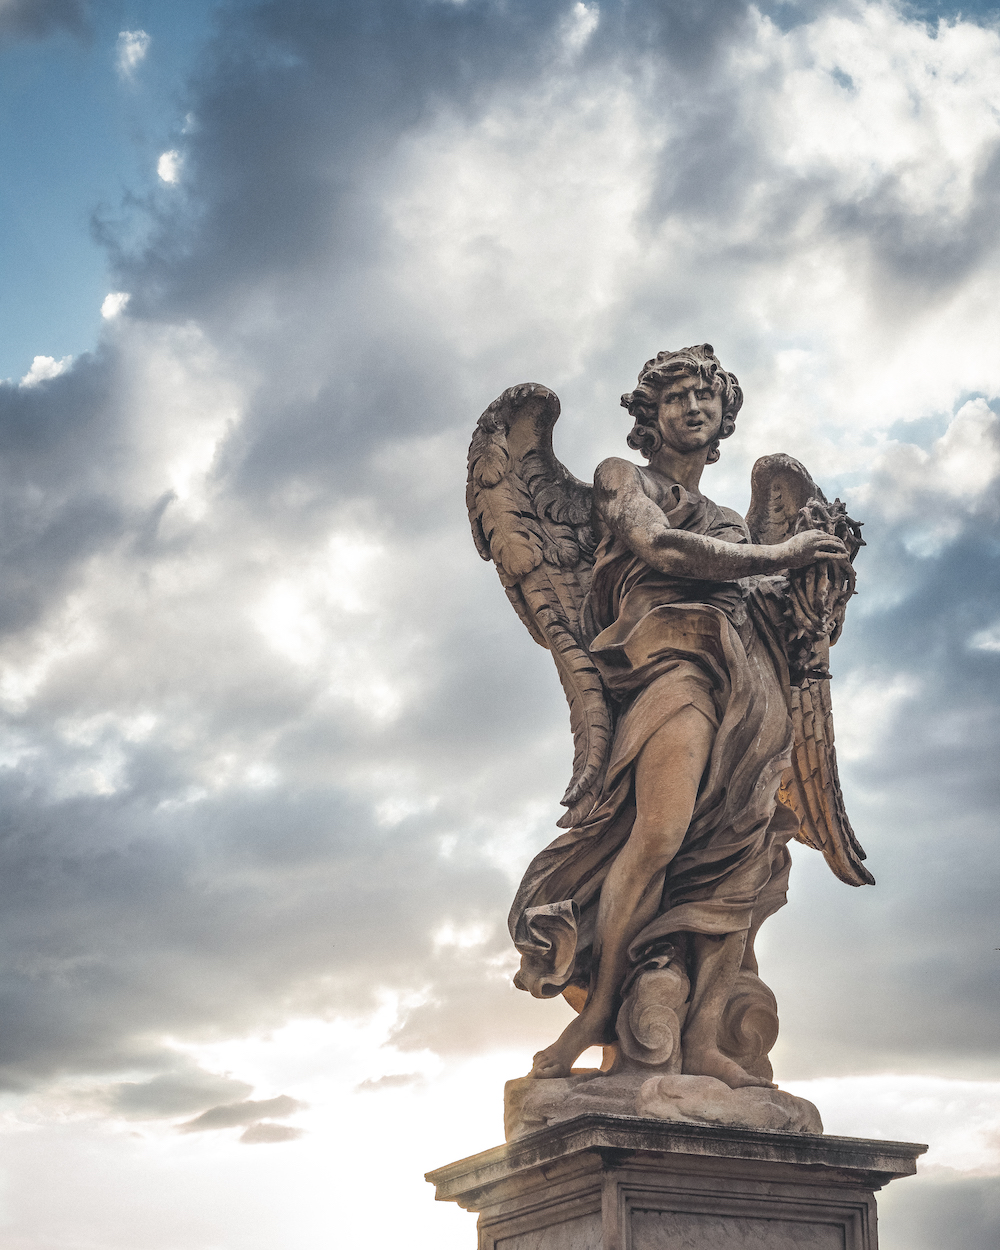 Why did some of the angels fall from Heaven? - spiritual warfare